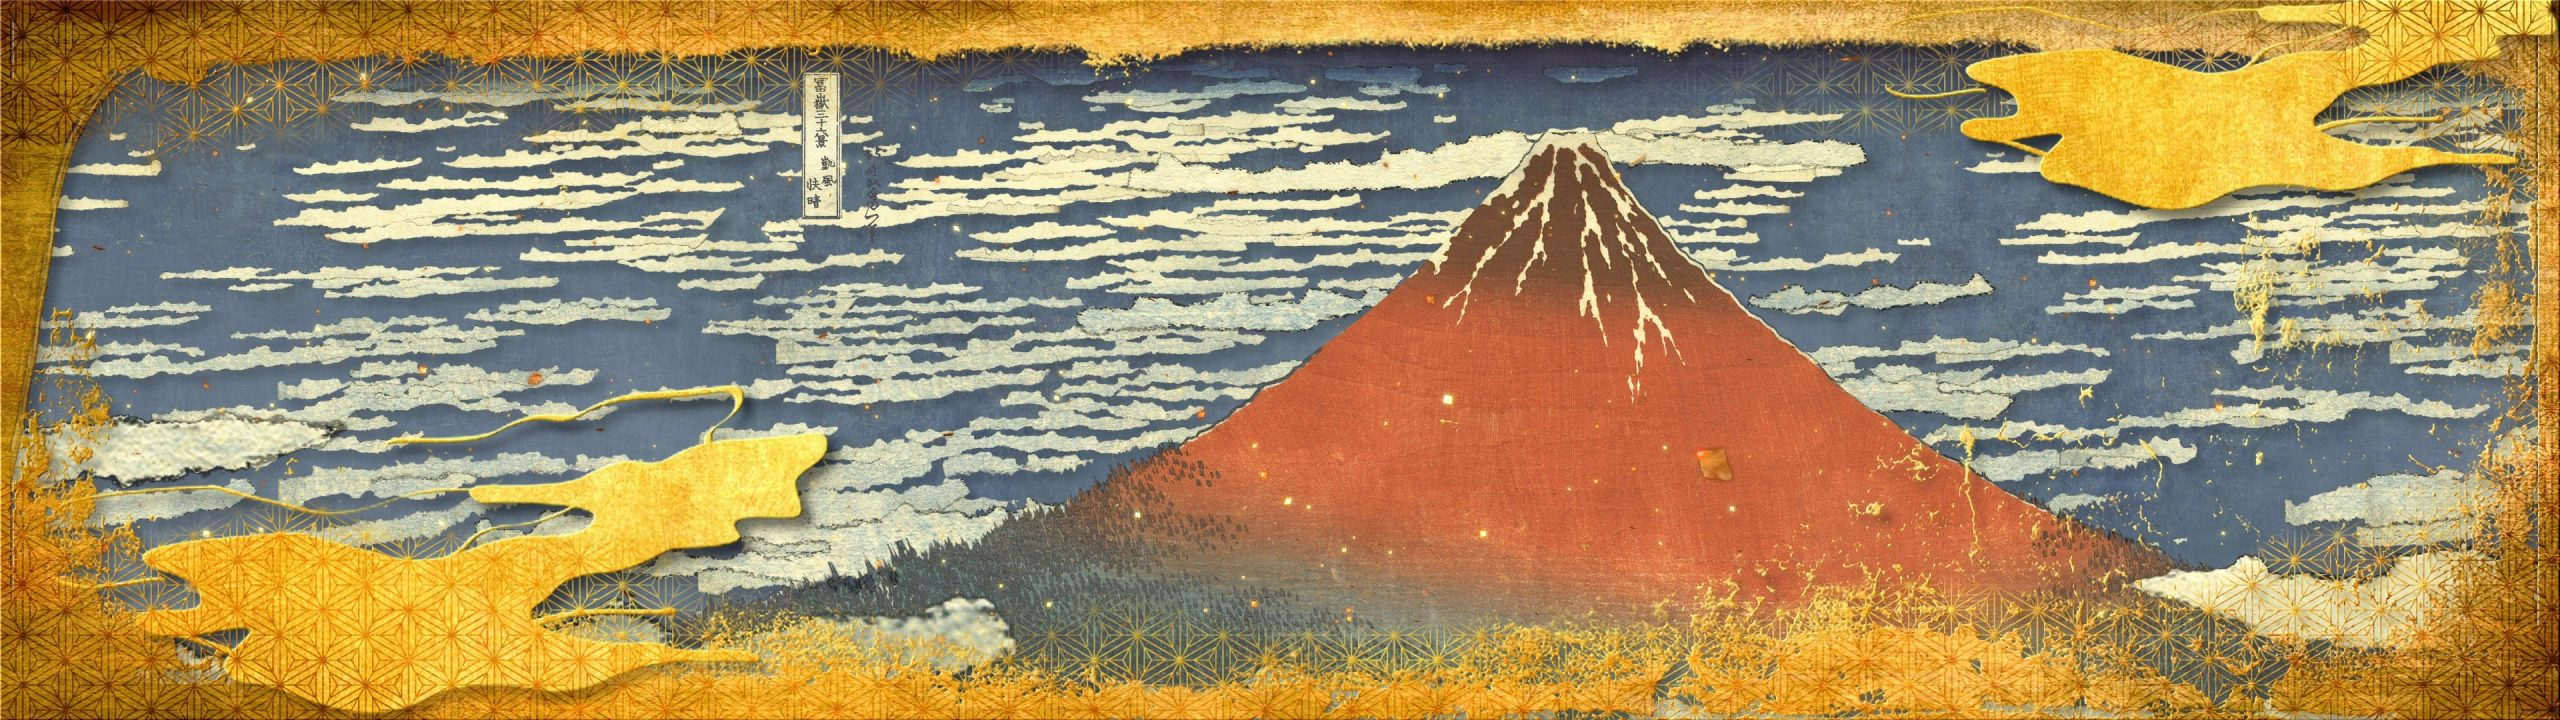 KATSUSHIKA Hokusai's ukiyo-e piece Thirty-six Views of Mount Fuji